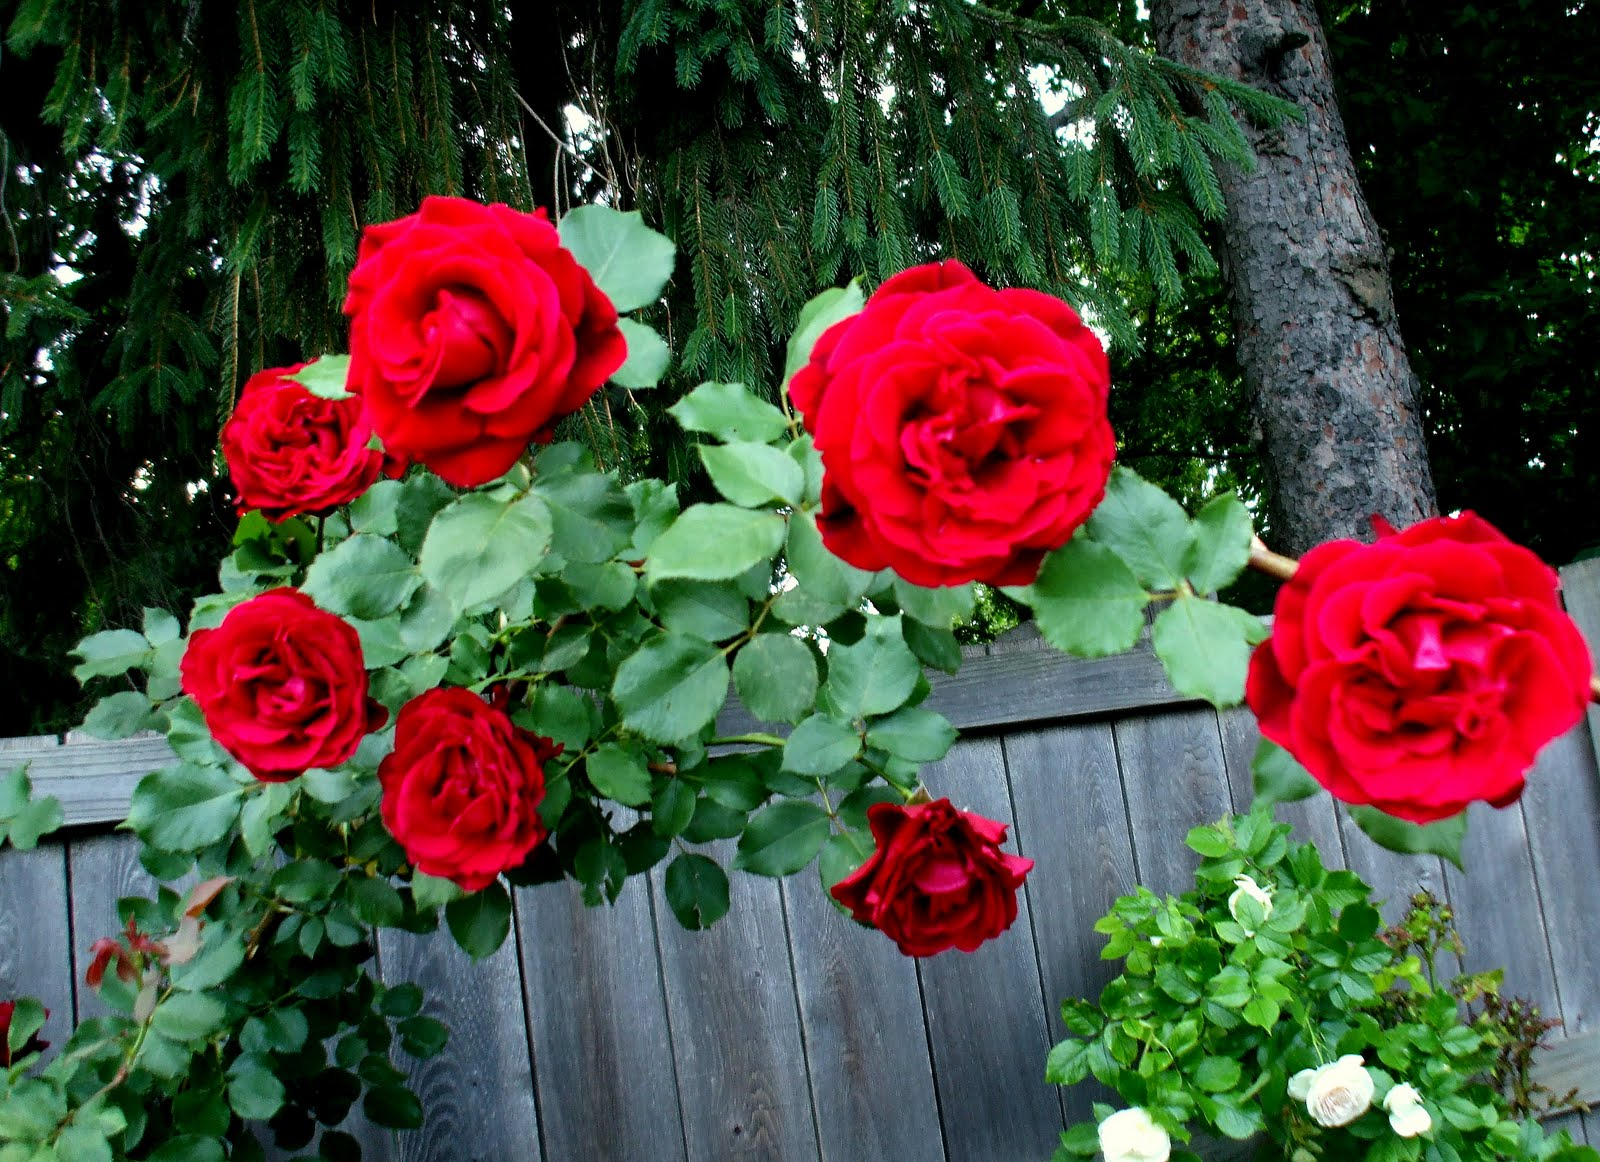 Roses In Garden: A Rose In The Garden: Everything's Coming Up Roses